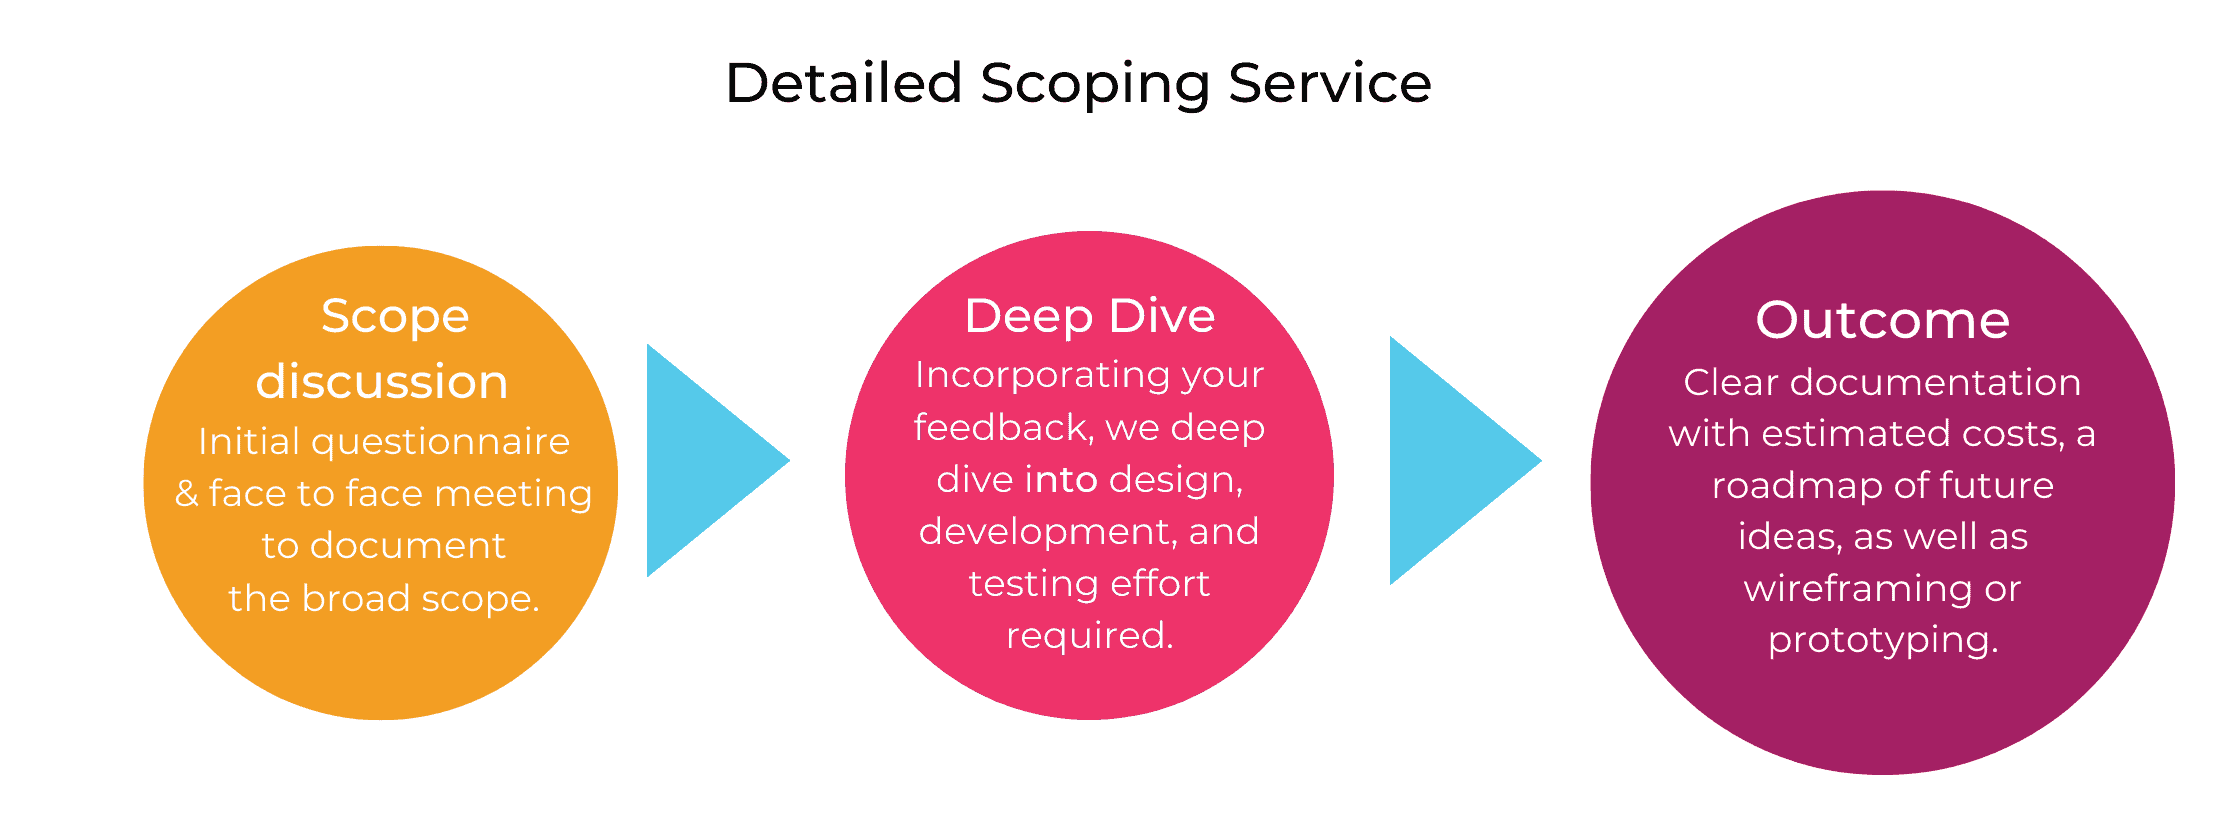 Detailed scoping service